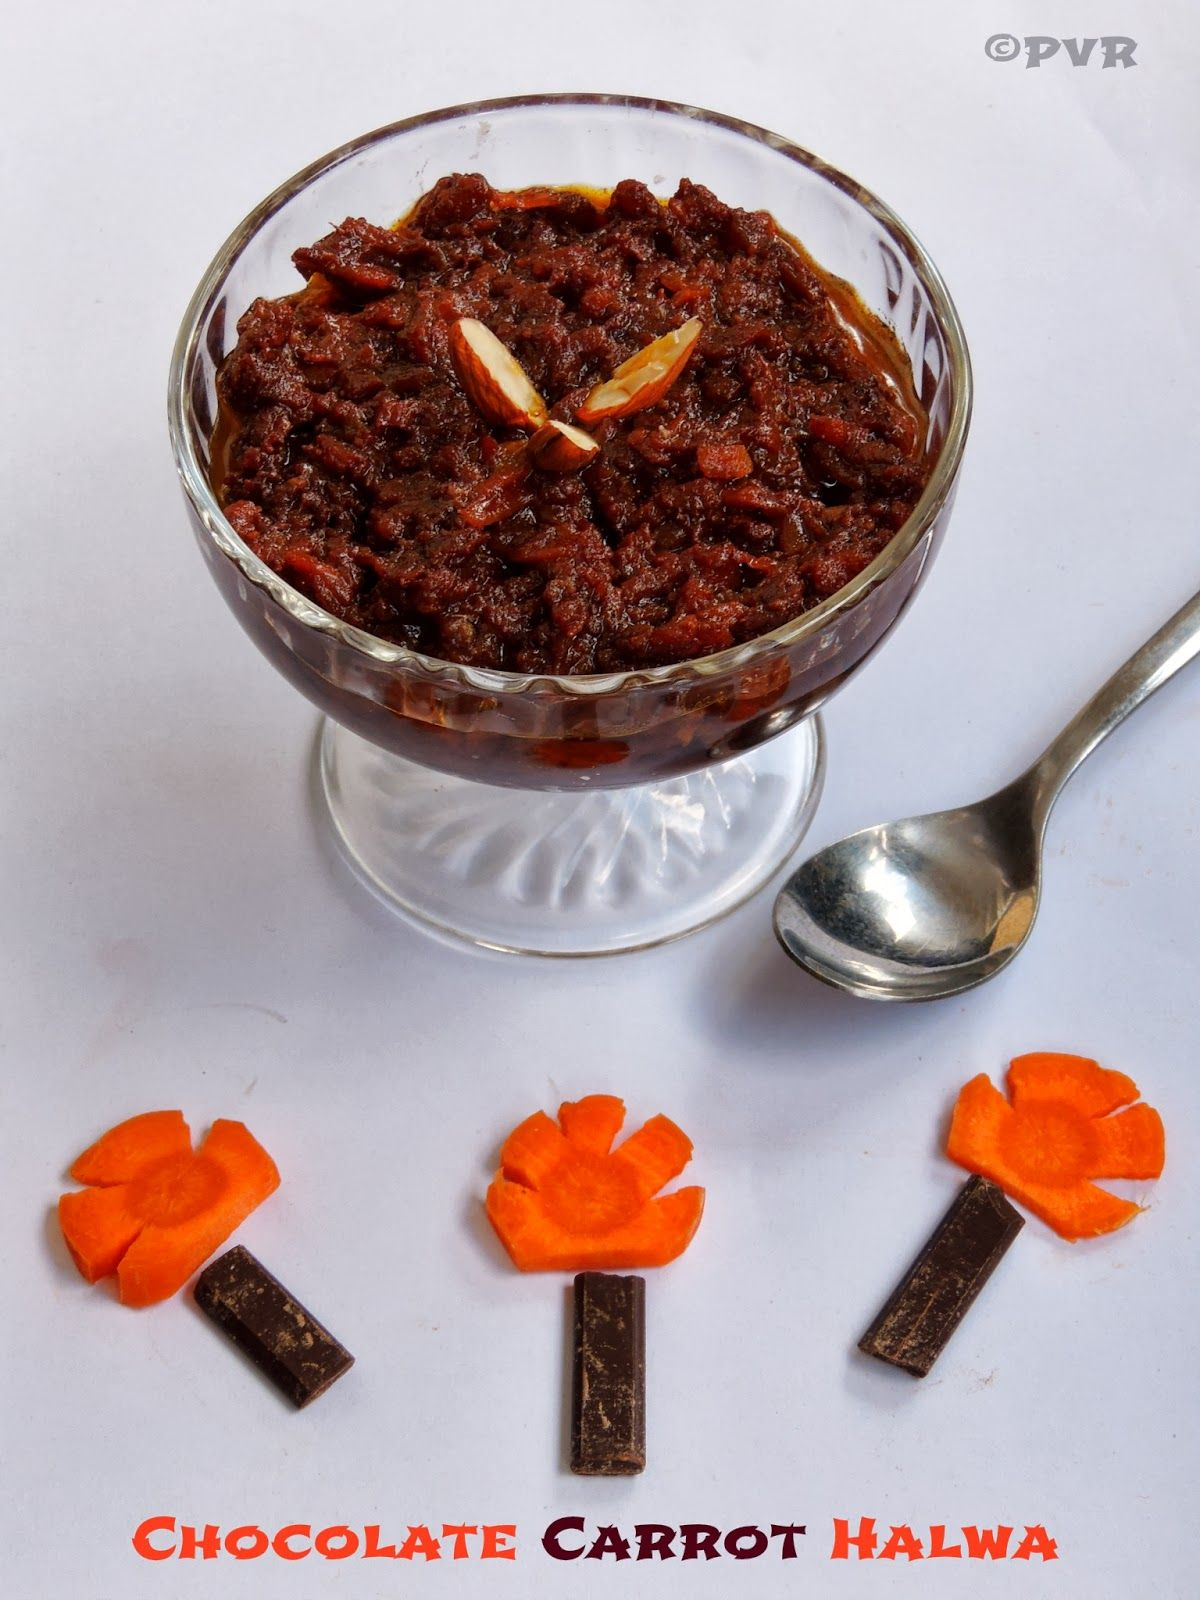 Priya's Versatile Recipes: Chocolate Carrot Halwa